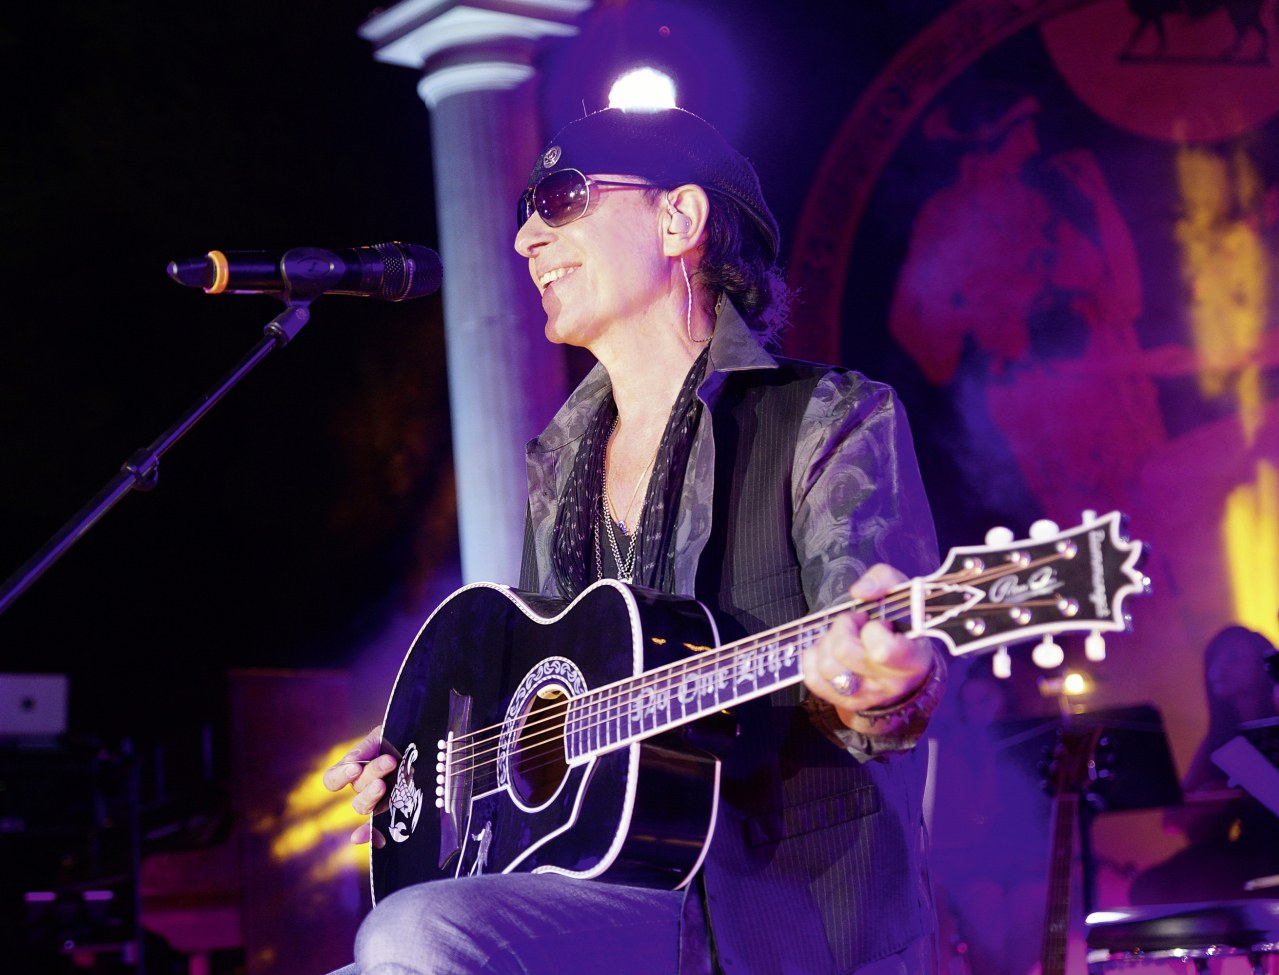 Scorpions - Forever and a Day - Bild 1